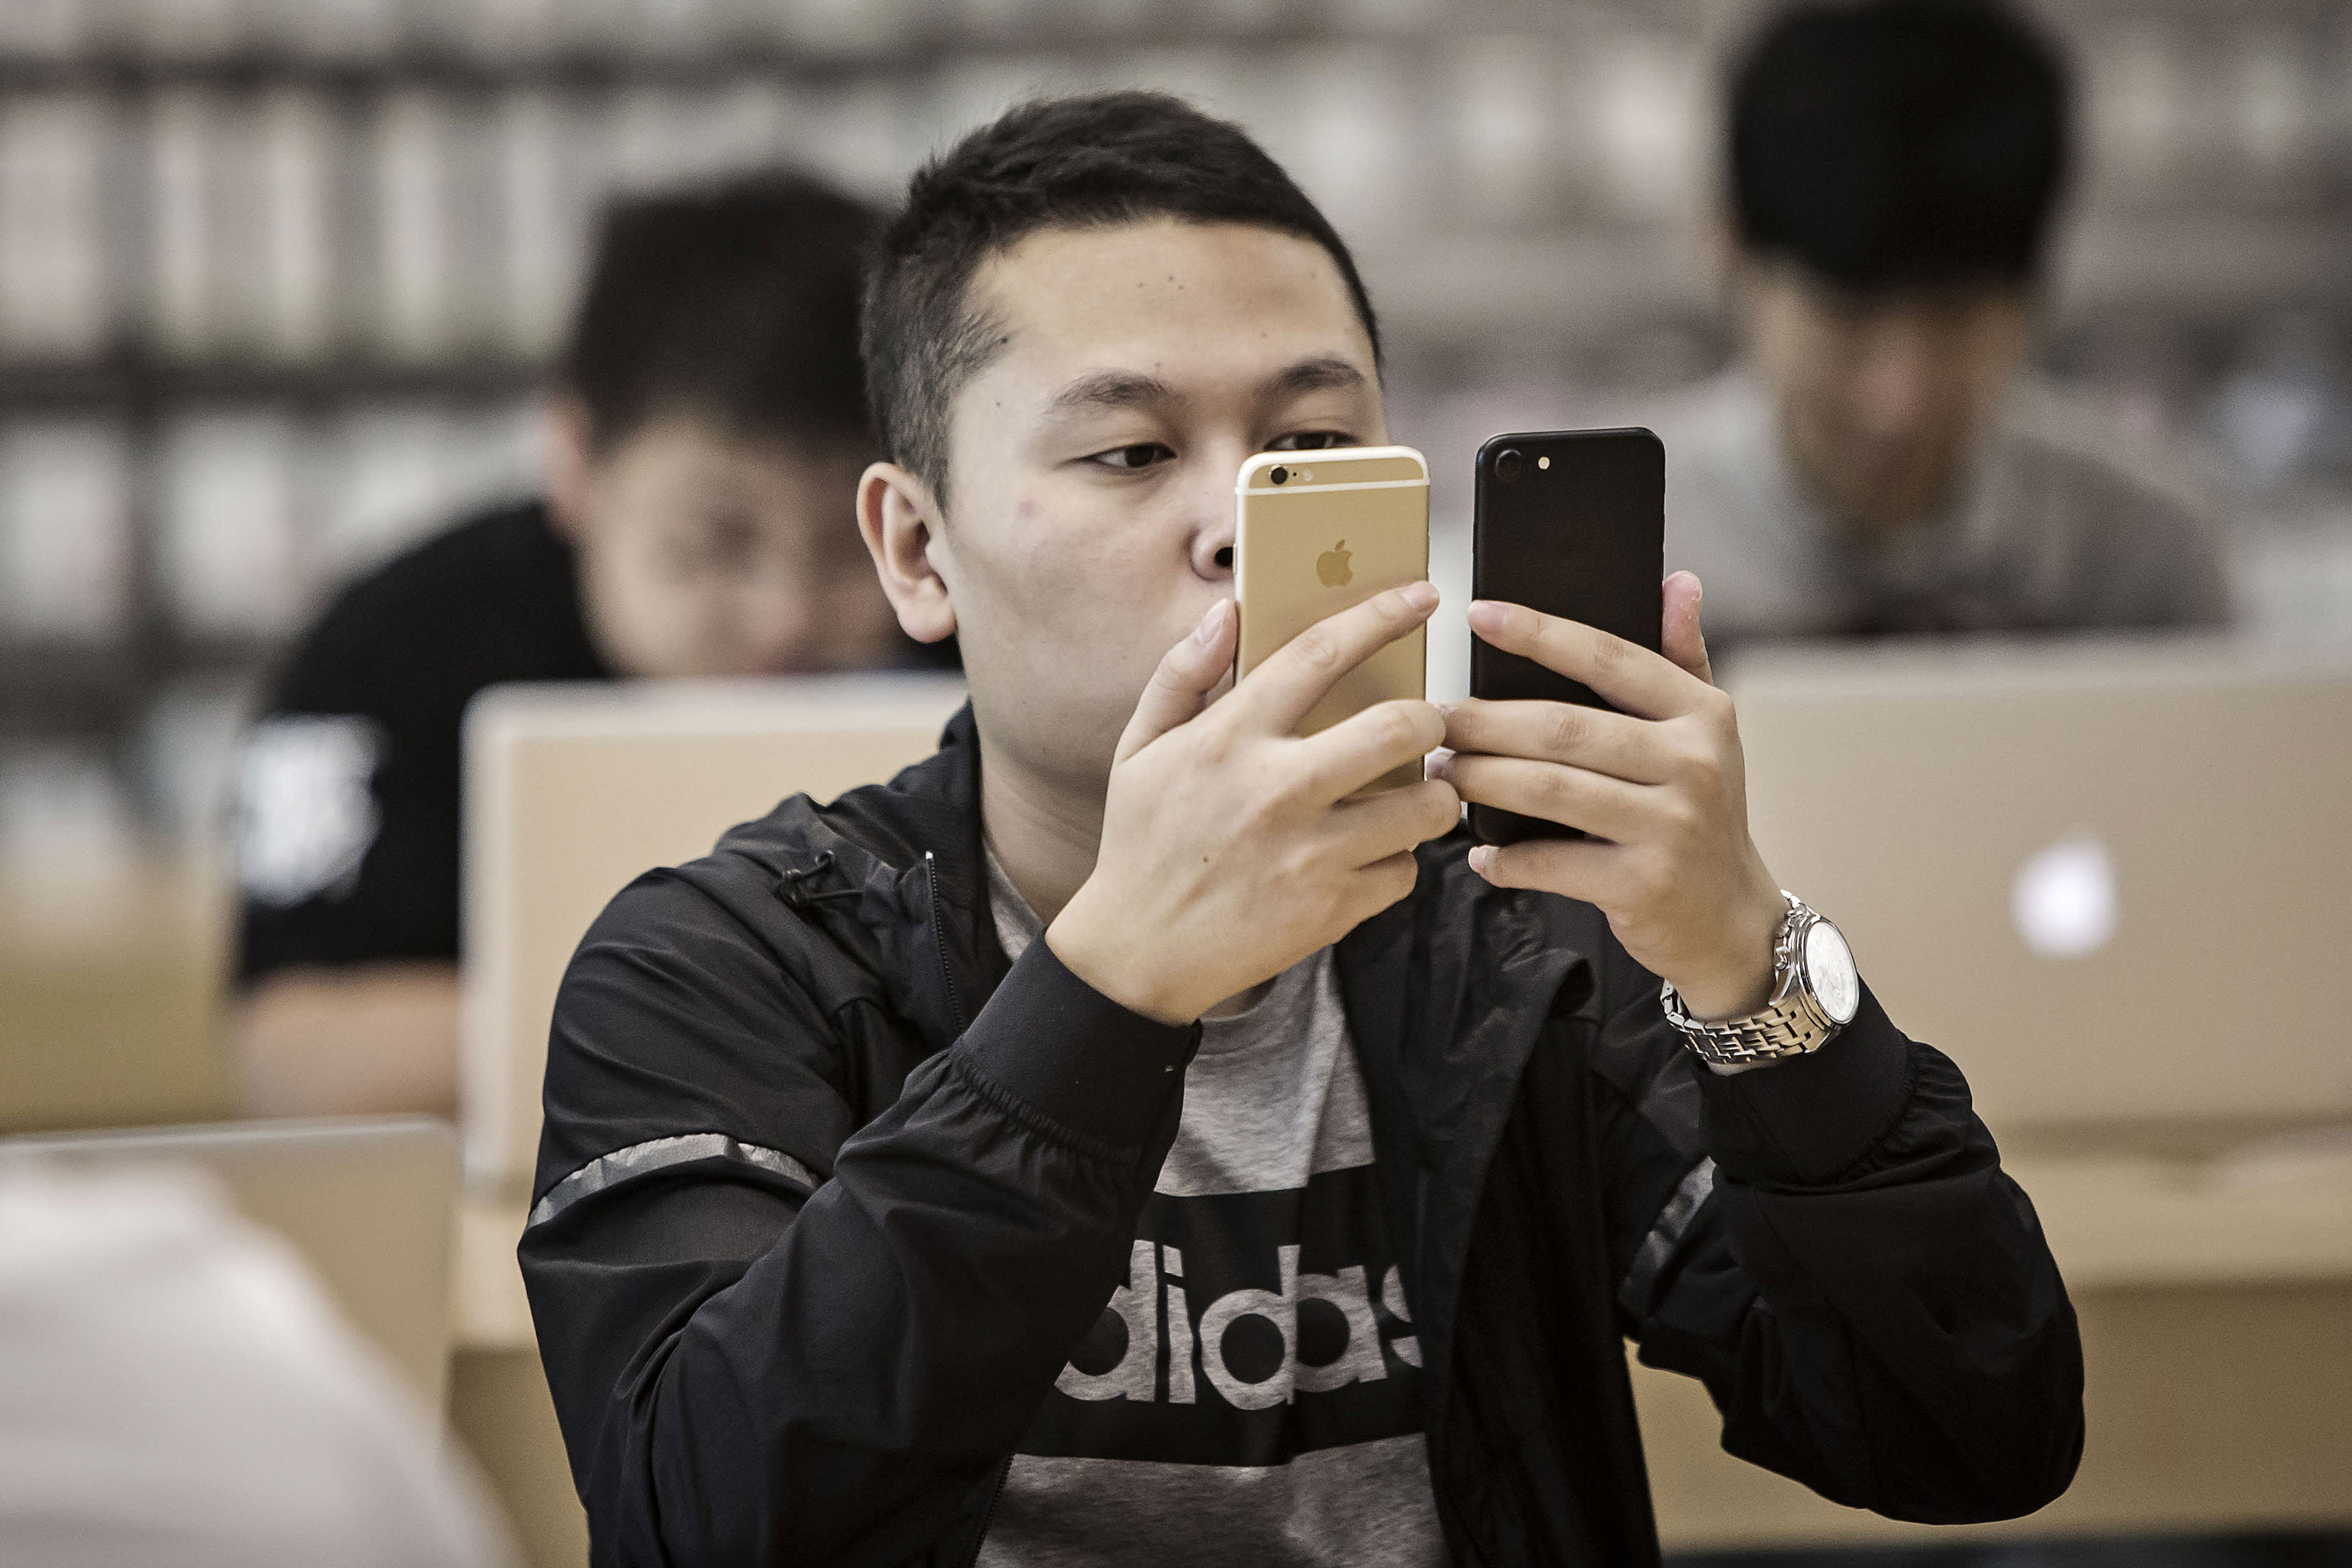 'I'm actually excited' about the iPhone's prospects in China, Jim Cramer says